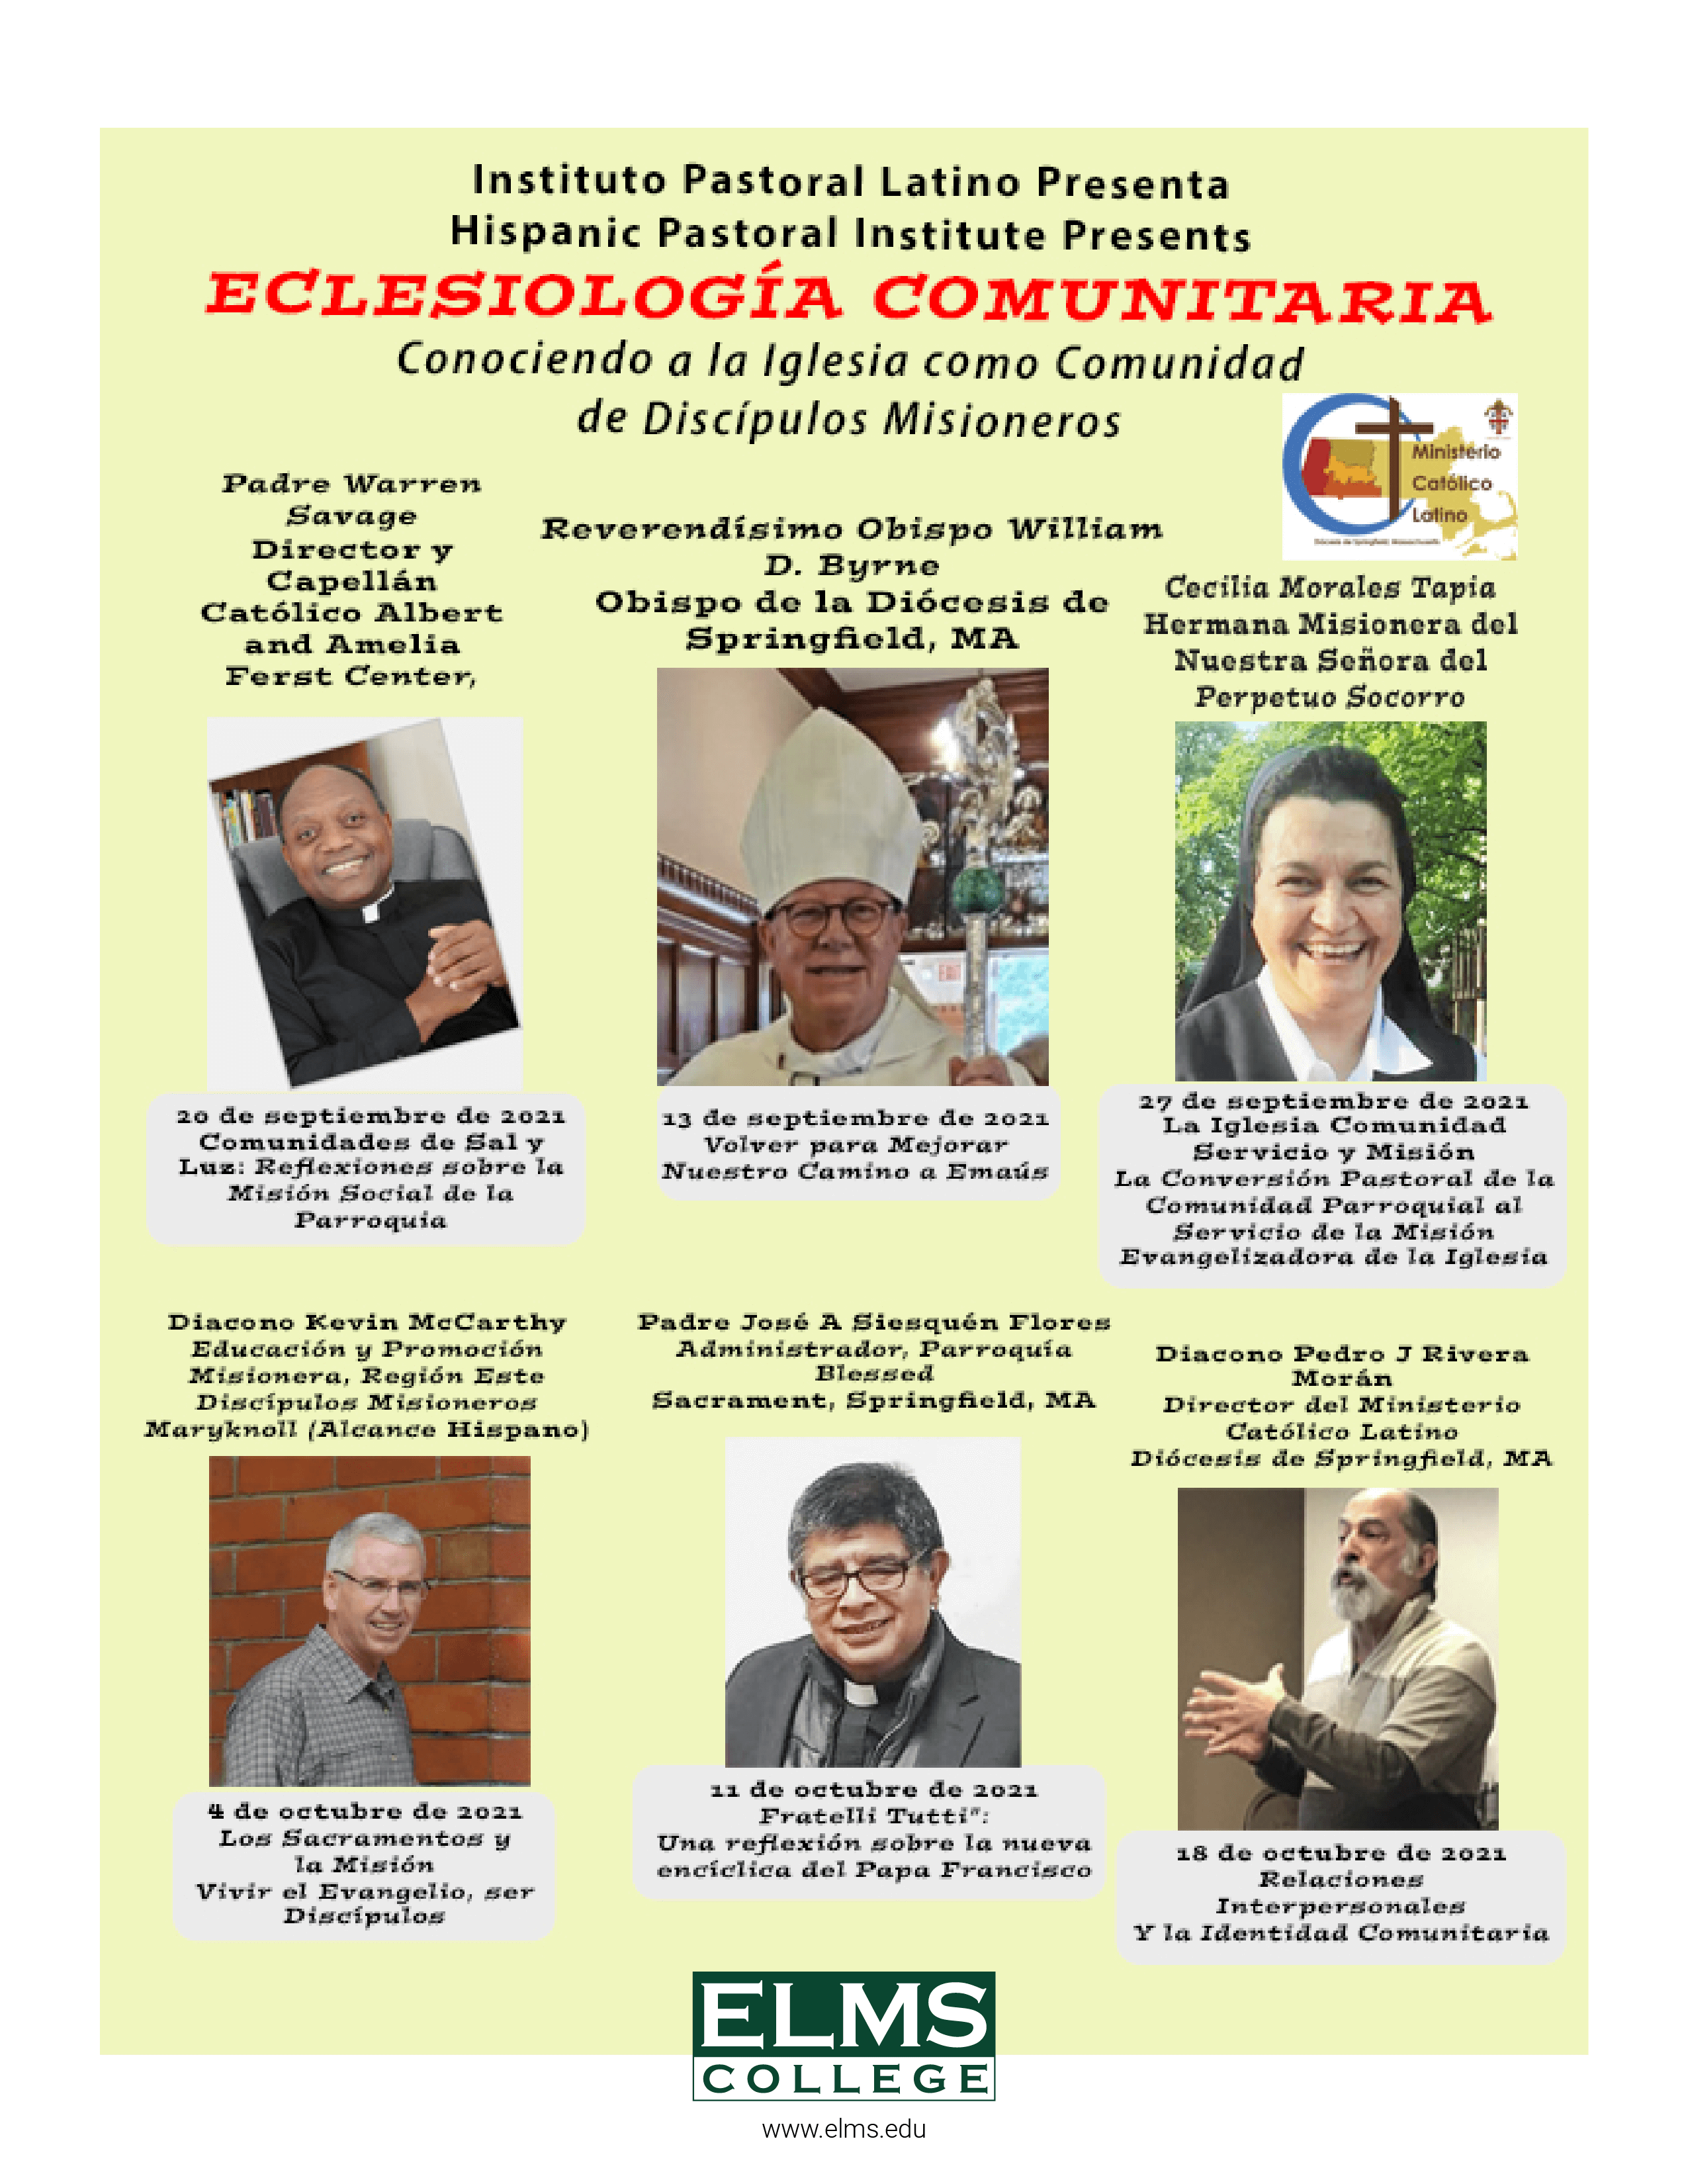 Community Ecclesiology Events